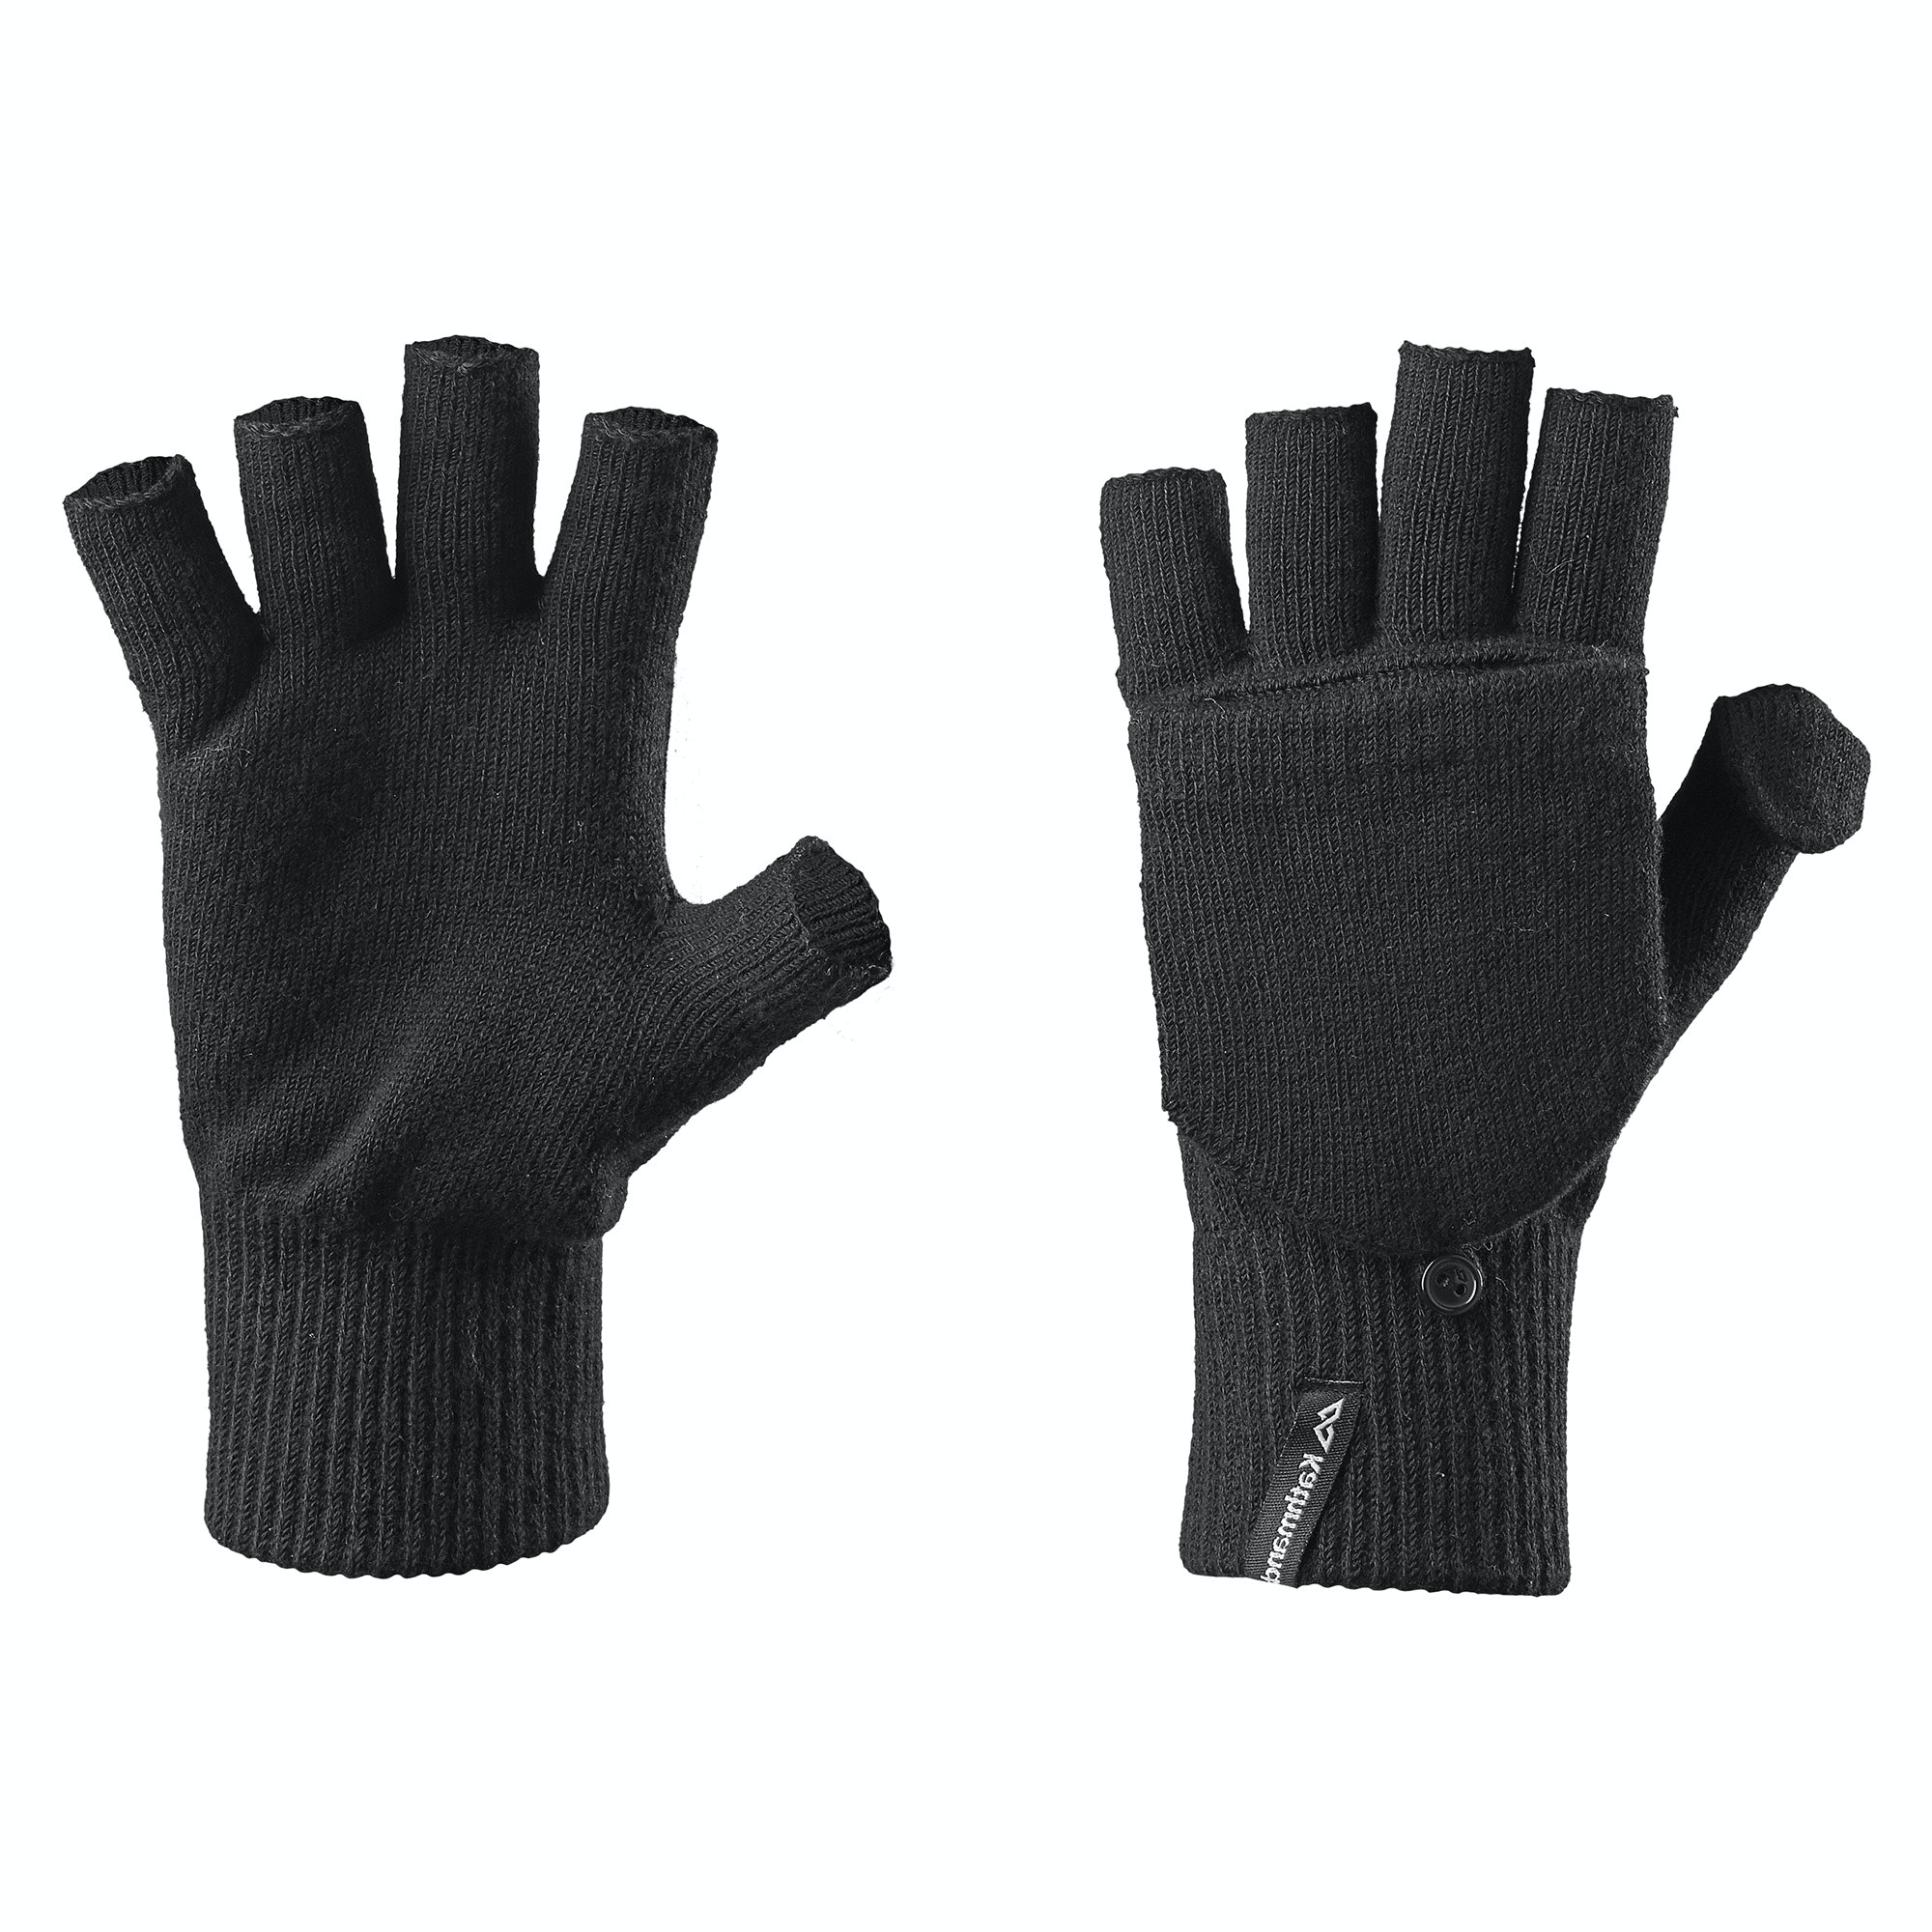 top glove Tg medical (usa) inc has been a leading provider of disposable gloves for both the medical and industrial markets since 1995 our parent company top glove, the world.